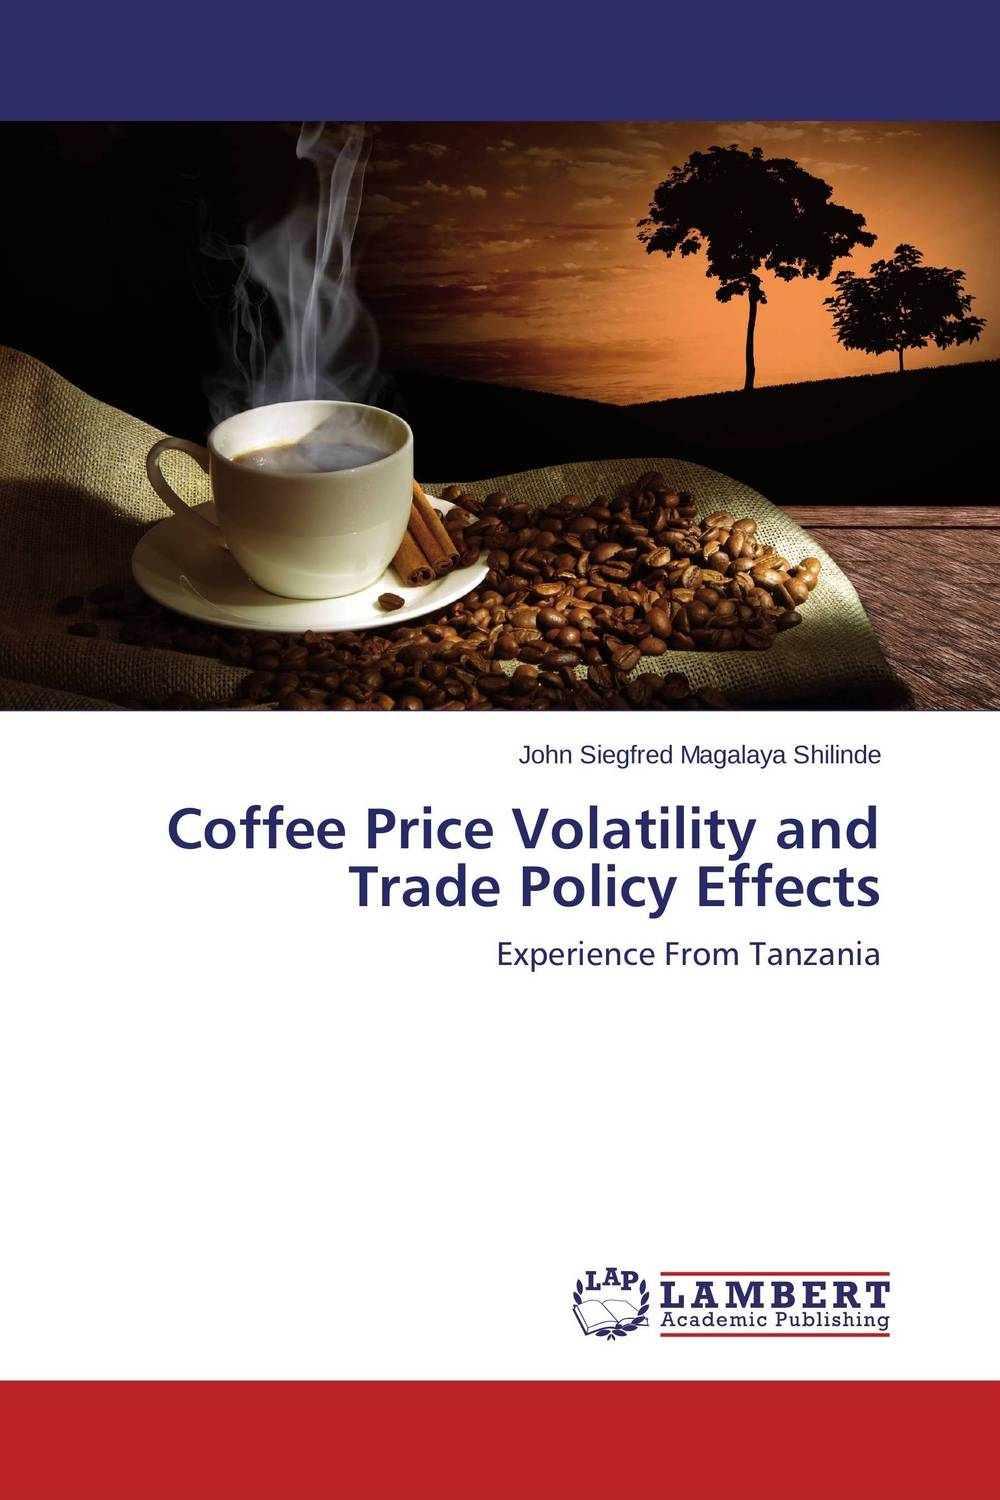 Coffee Price Volatility and Trade Policy Effects a statistical approach in modelling maize prices volatility